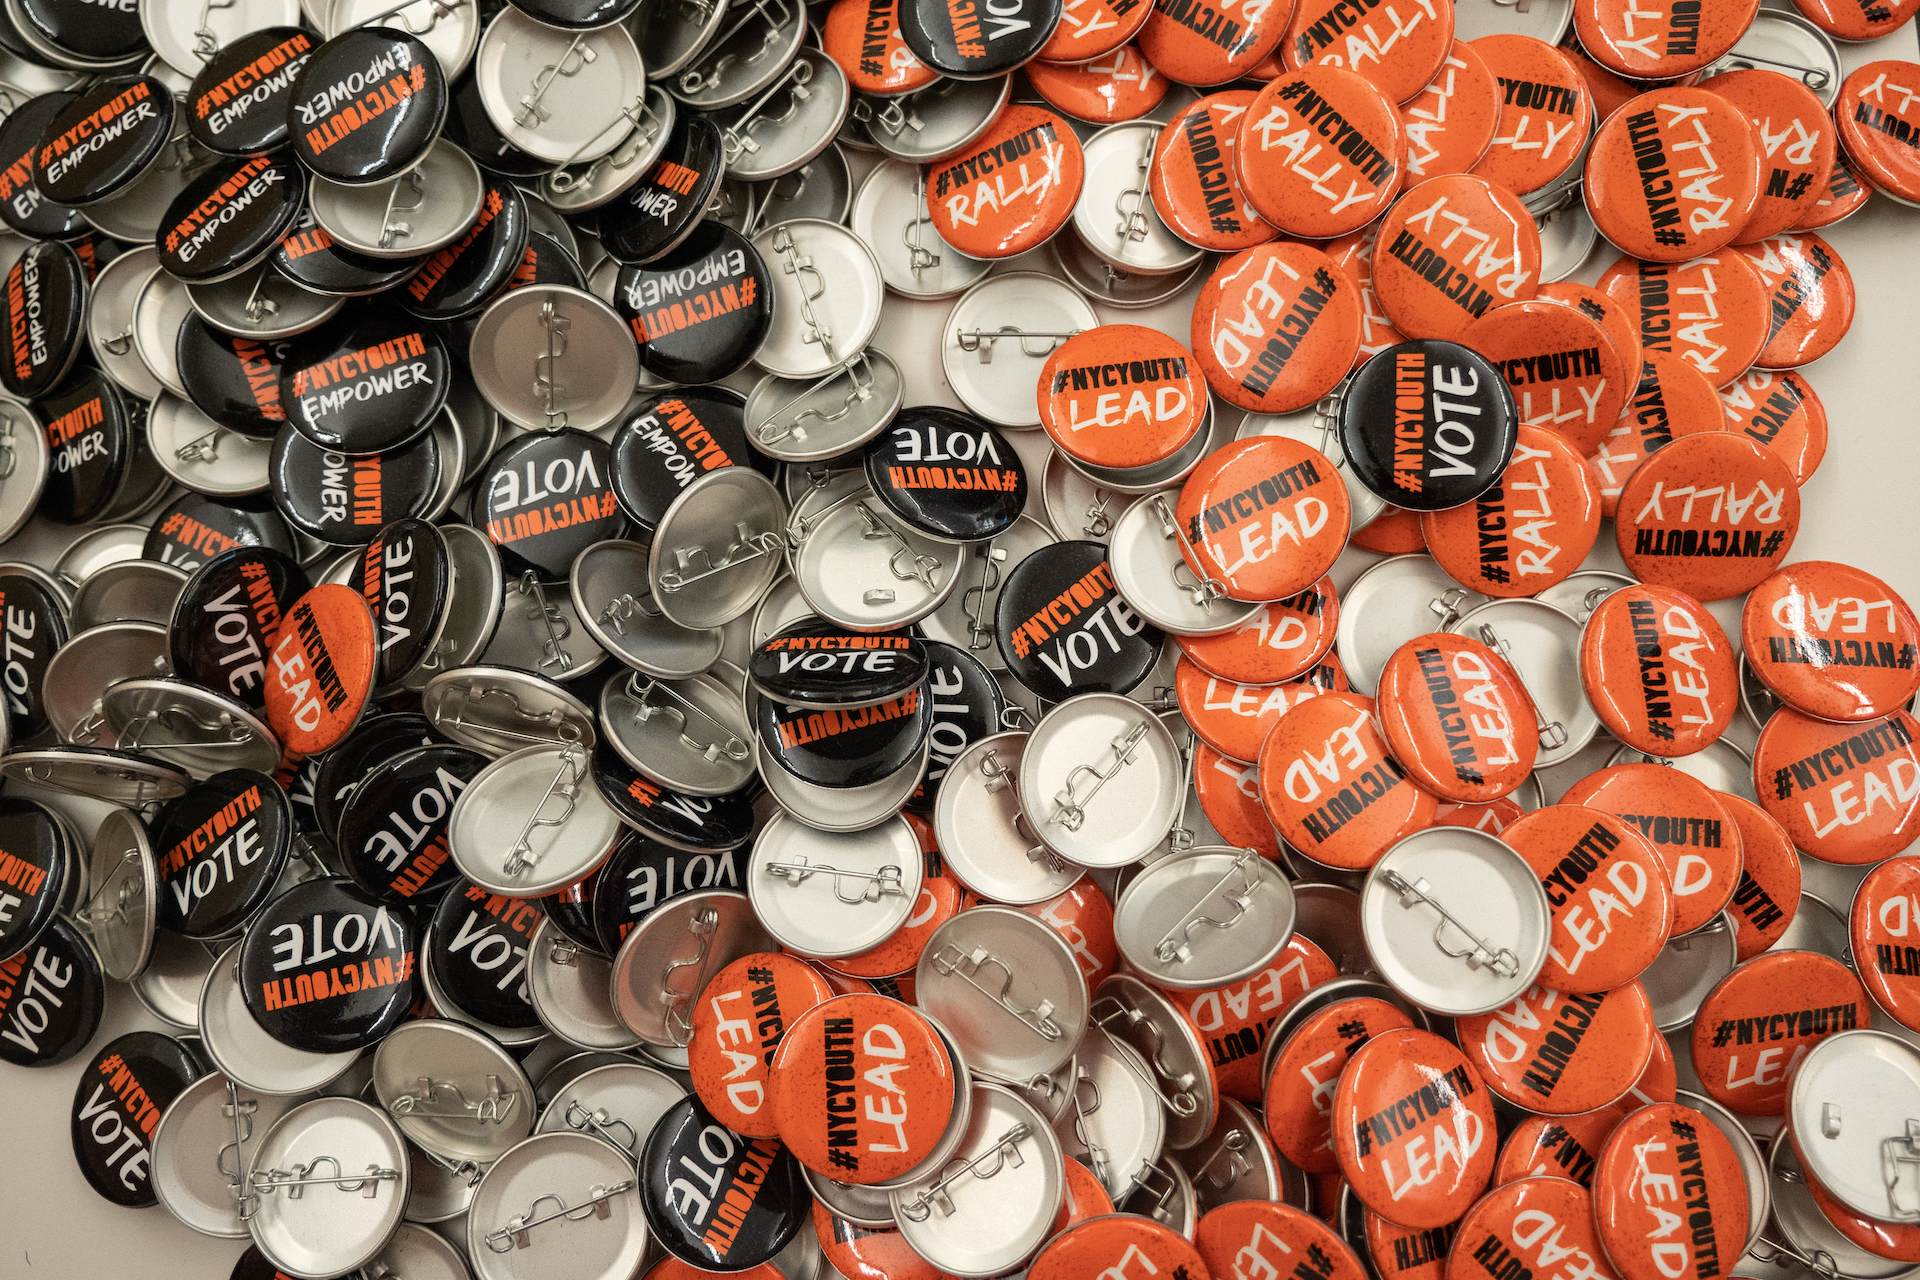 Orange and black round one inch pinback buttons designed individually with the phrases #nycyouth rally, #nycyouth lead, #nycyouth empower, and #nycyouth vote for the Democracy Corps Day of Action event.